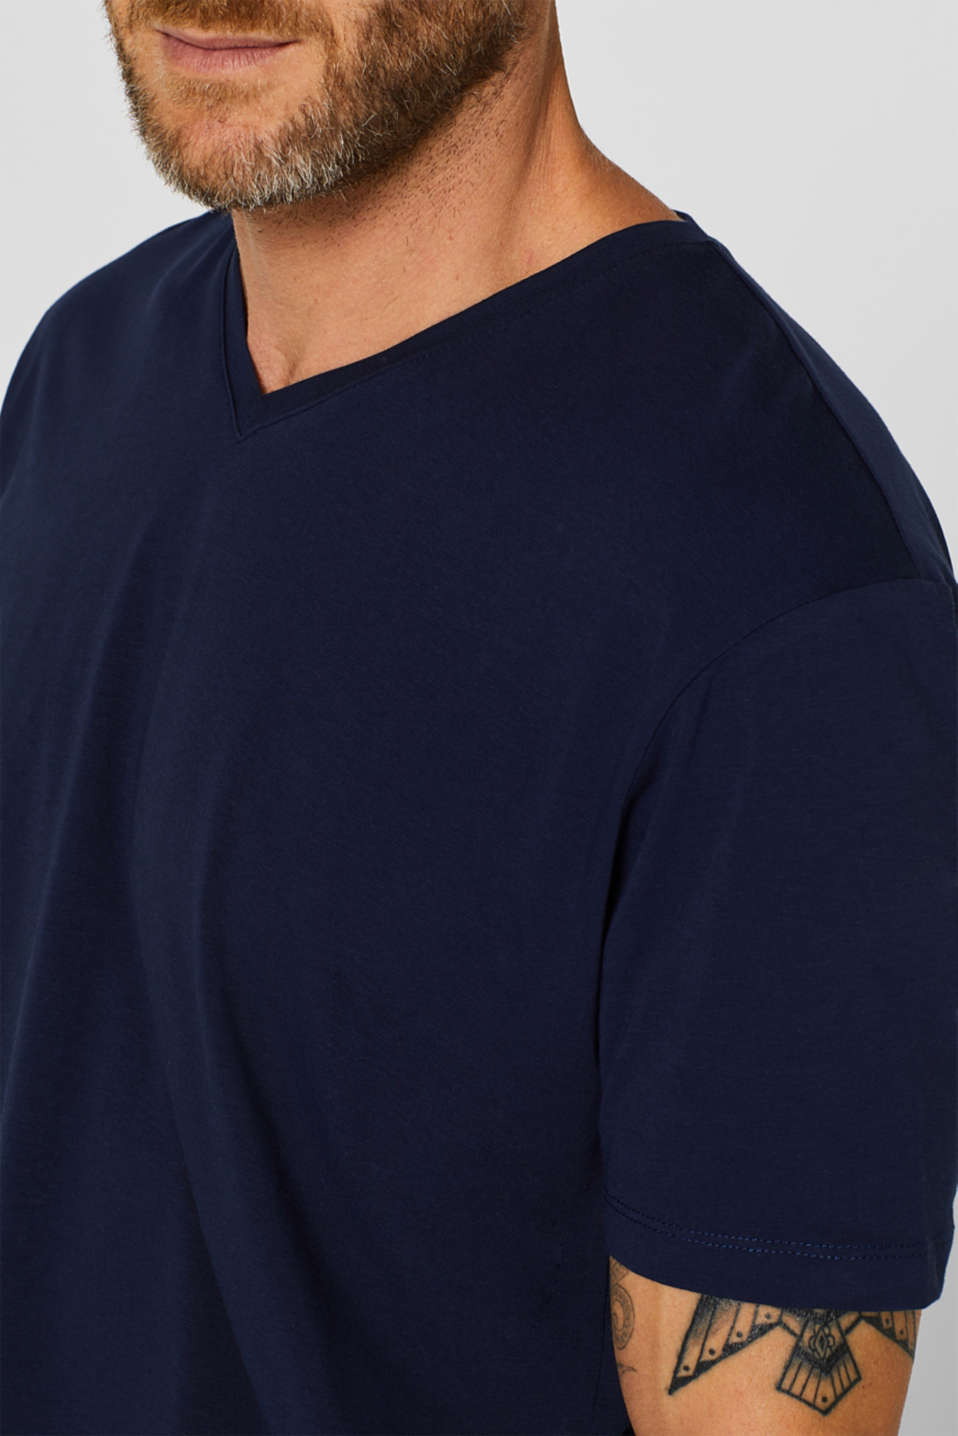 Jersey T-shirt in stretch cotton, NAVY, detail image number 1